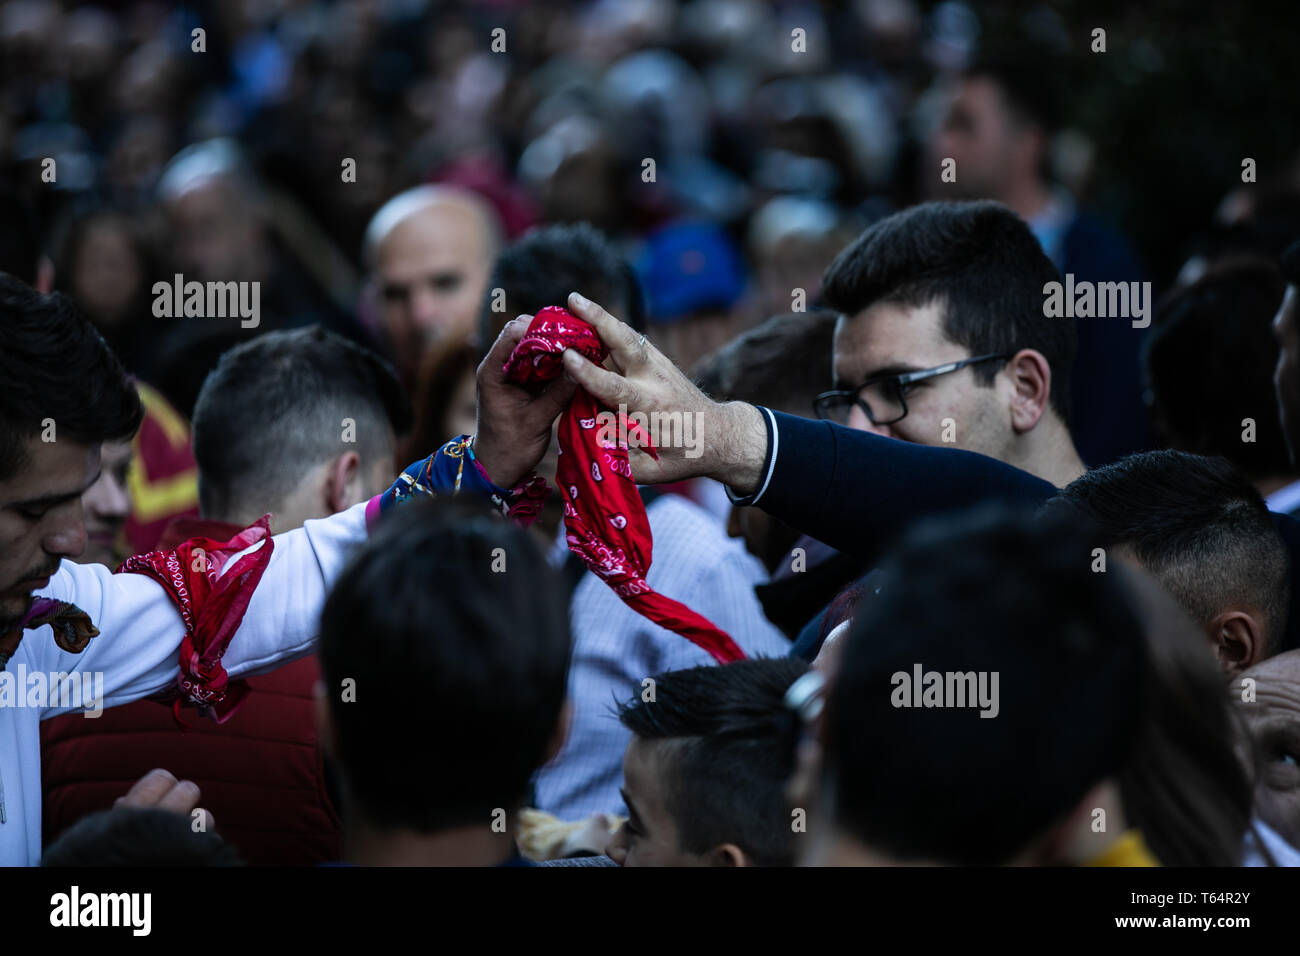 Meteora, Greece. 29th Apr, 2019. Villagers hand each other scarves at Meteora complex of sandstone cliffs in Kastraki village, central Greece, on April 29, 2019. Following a 300-year traditional custom during the annual celebrations of Saint George's Day, climbers hang colorful scarves near an old ruined monastery built in a cave 40 meters above the village on the sandstone rocks and return with the old ones, which can be given away as a token of good health. Credit: Lefteris Partsalis/Xinhua/Alamy Live News - Stock Image